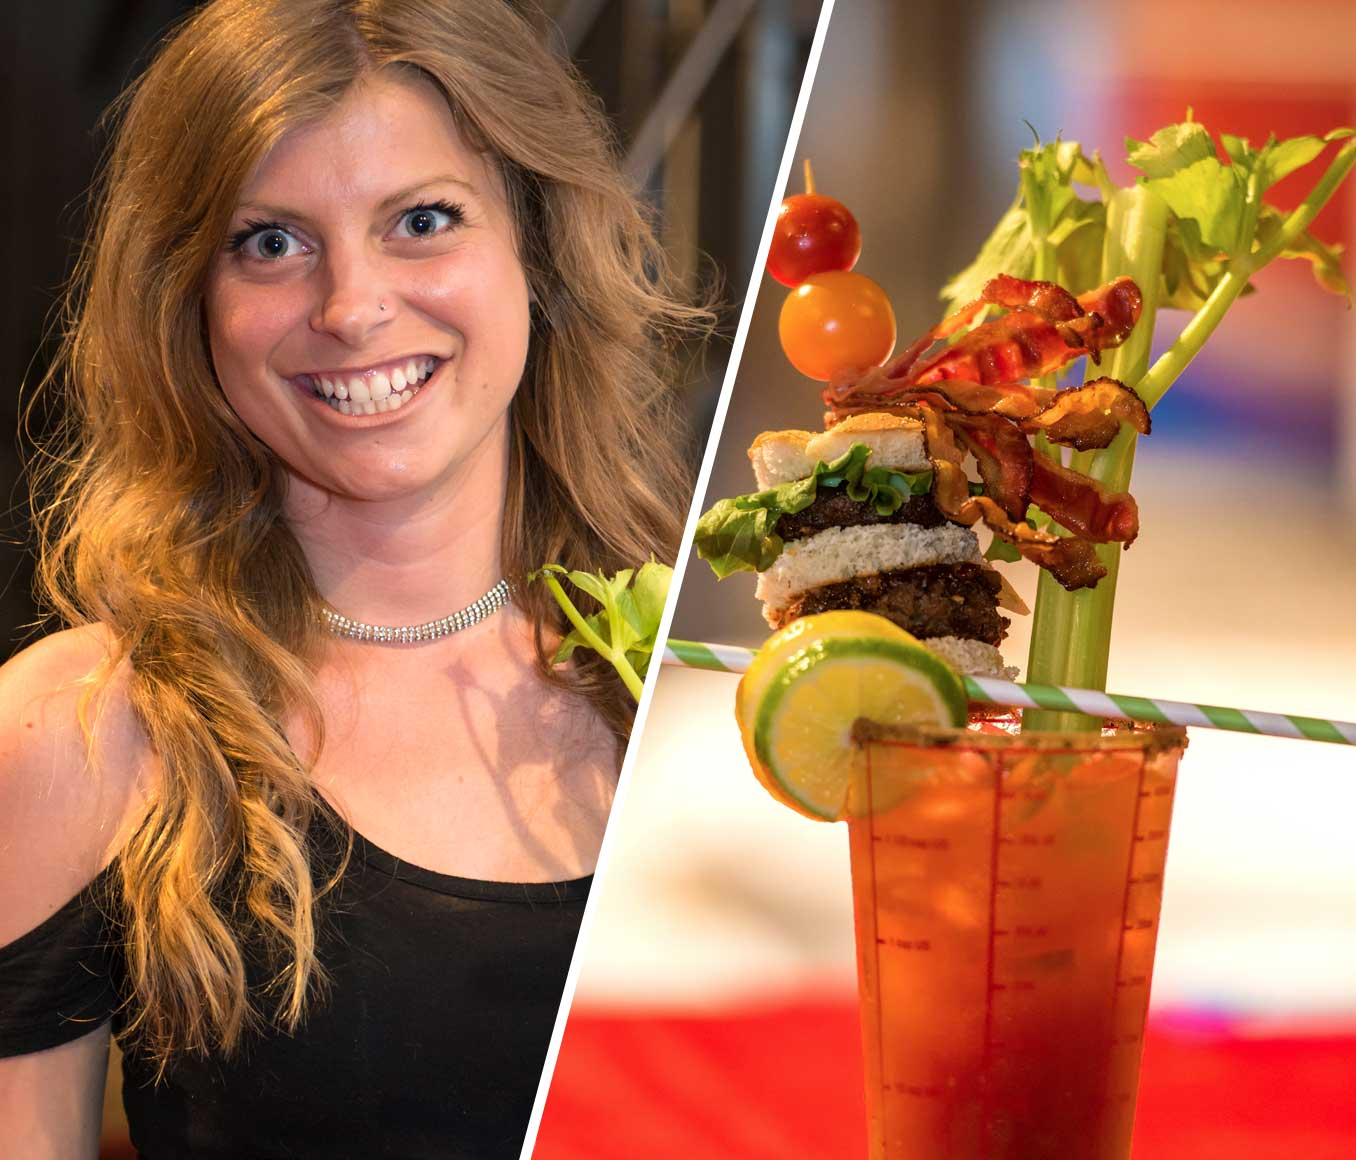 WINNER THE BEST CAESAR IN NEW BRUNSWICK